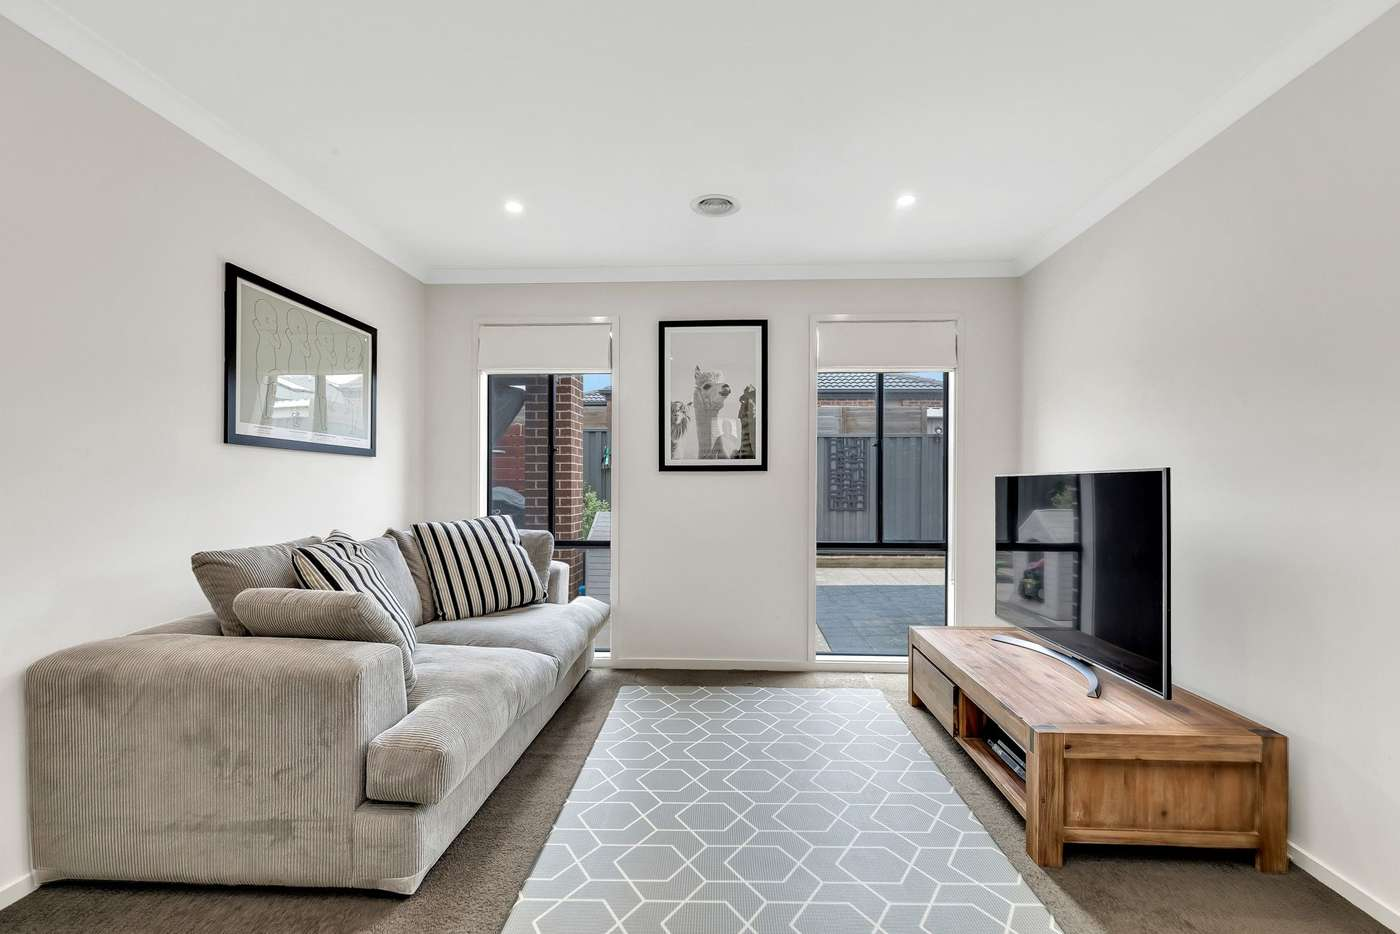 Seventh view of Homely house listing, 37 Weavers Street, Manor Lakes VIC 3024